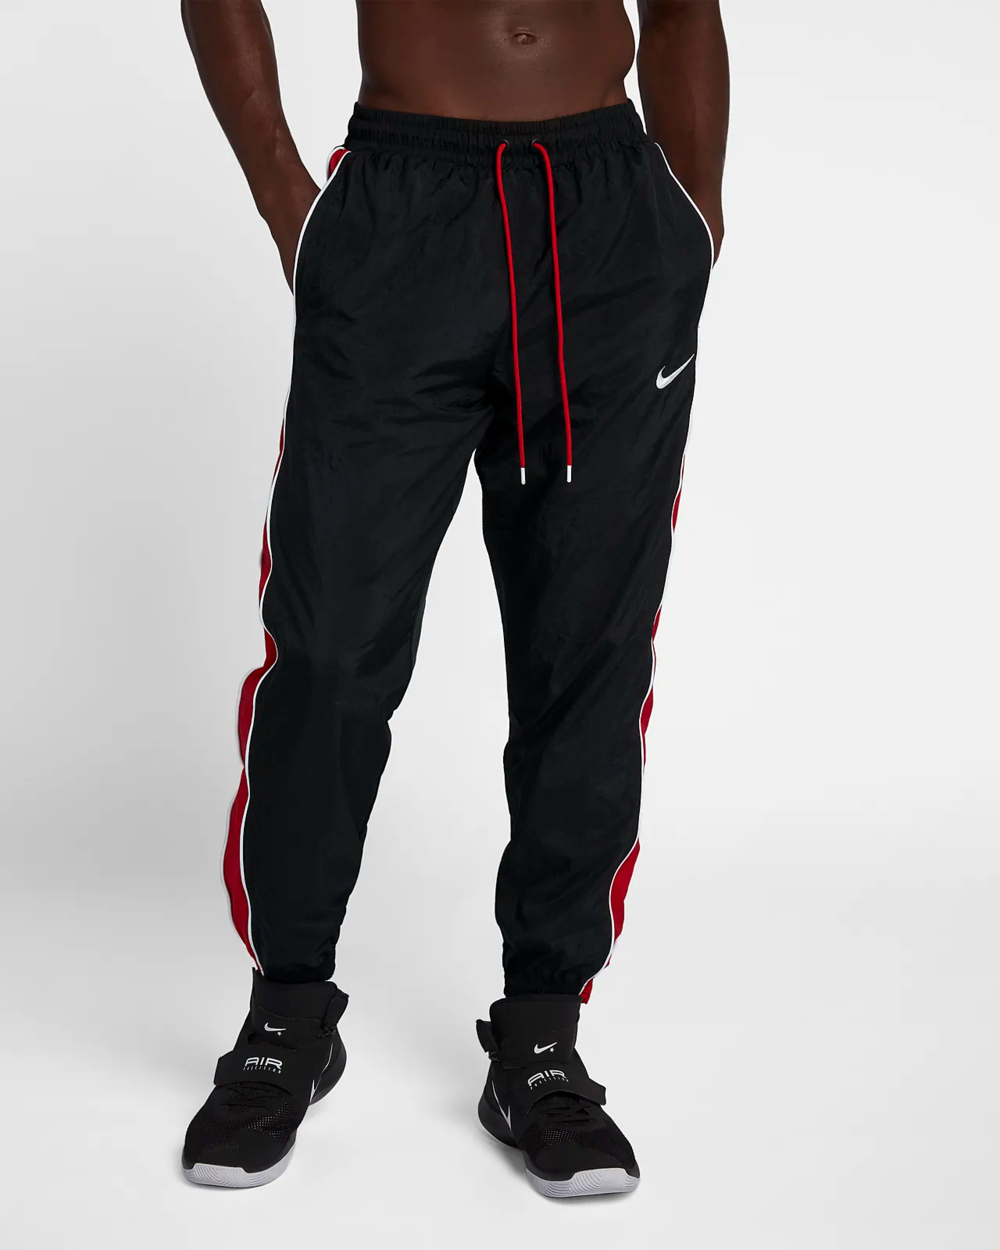 throwback-mens-woven-tracksuit-basketball-pants-cFcVn5 (2).png